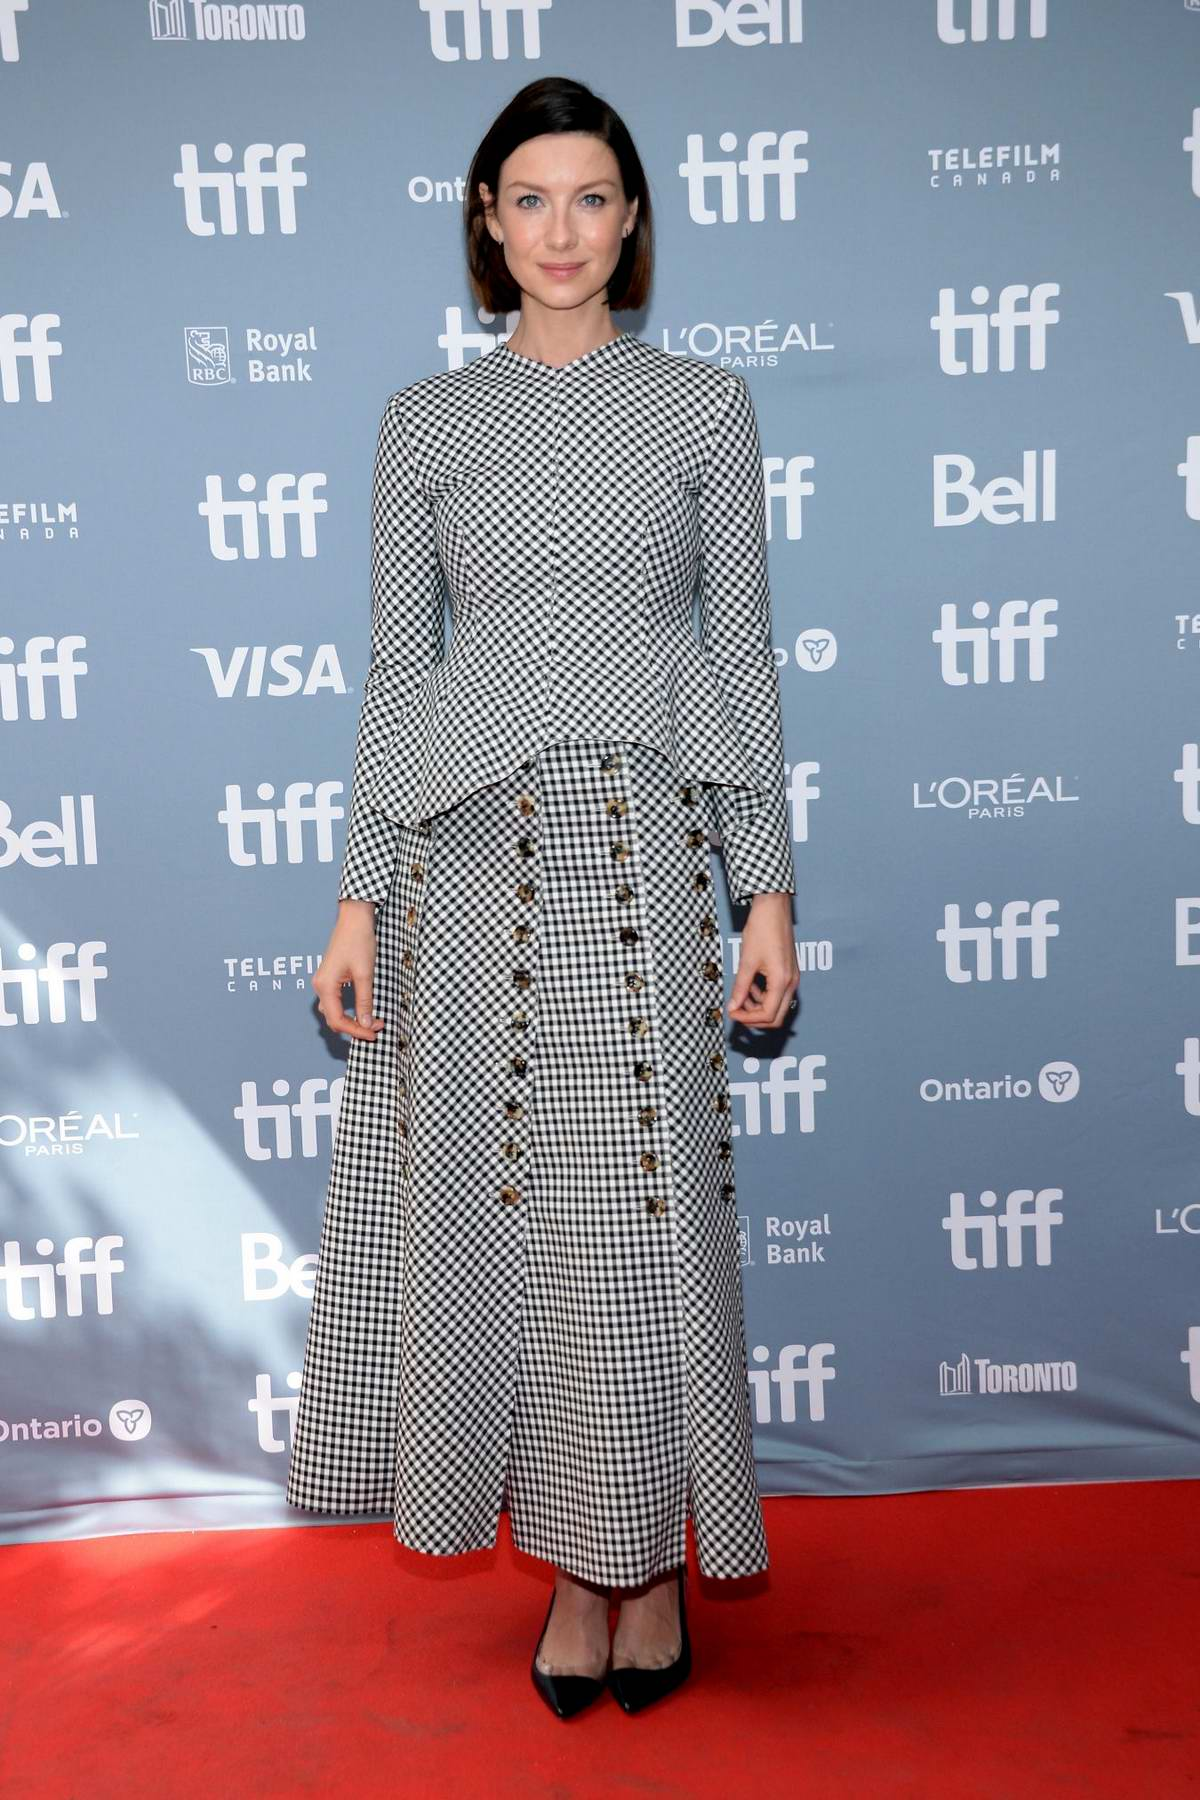 Caitriona Balfe attends the 'Ford v Ferrari' press conference during the 2019 Toronto International Film Festival in Toronto, Canada